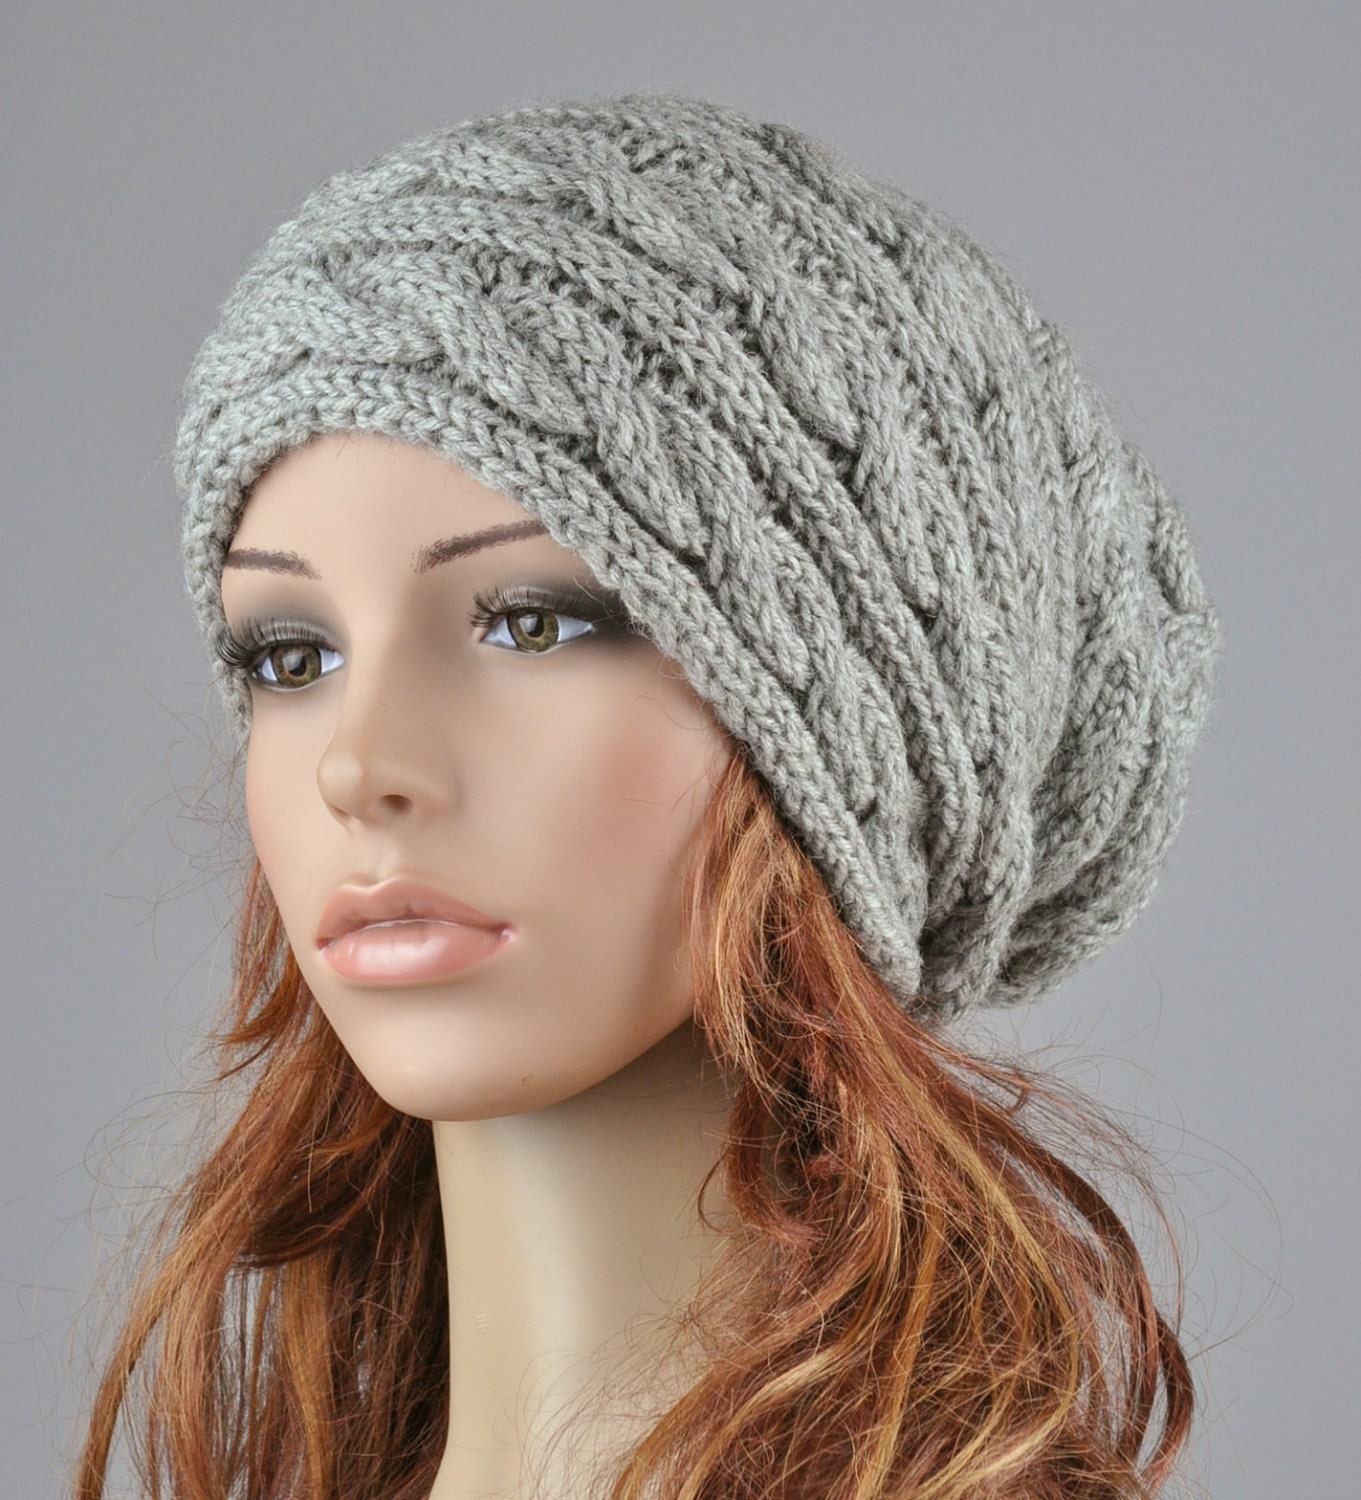 Knitting Patterns For Winter Hats : Hand knit hat Grey hat slouchy hat cable pattern hat